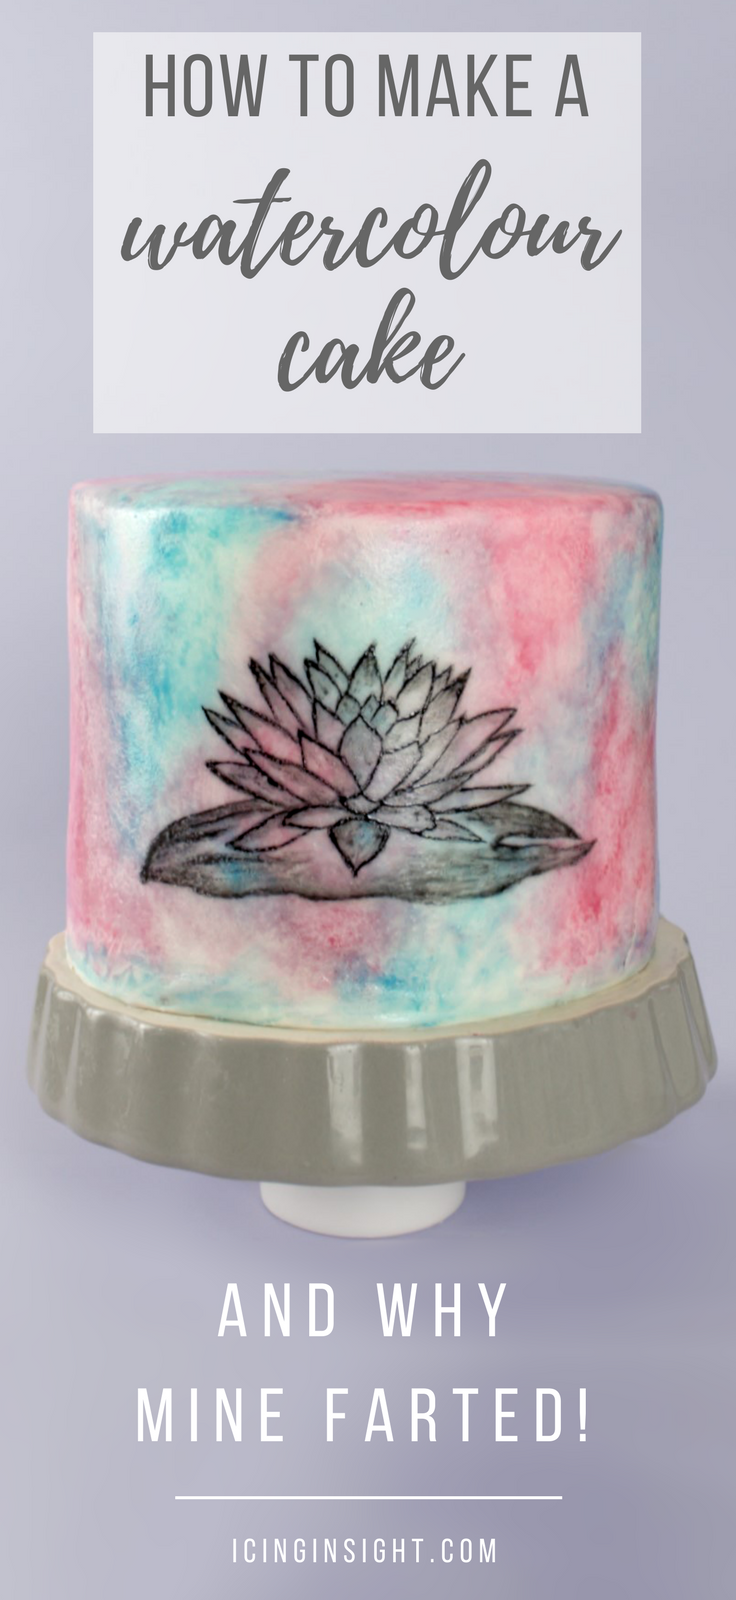 How to make a watercolour cake with a little fondant and food colouring. Step by step cake decorating tutorial